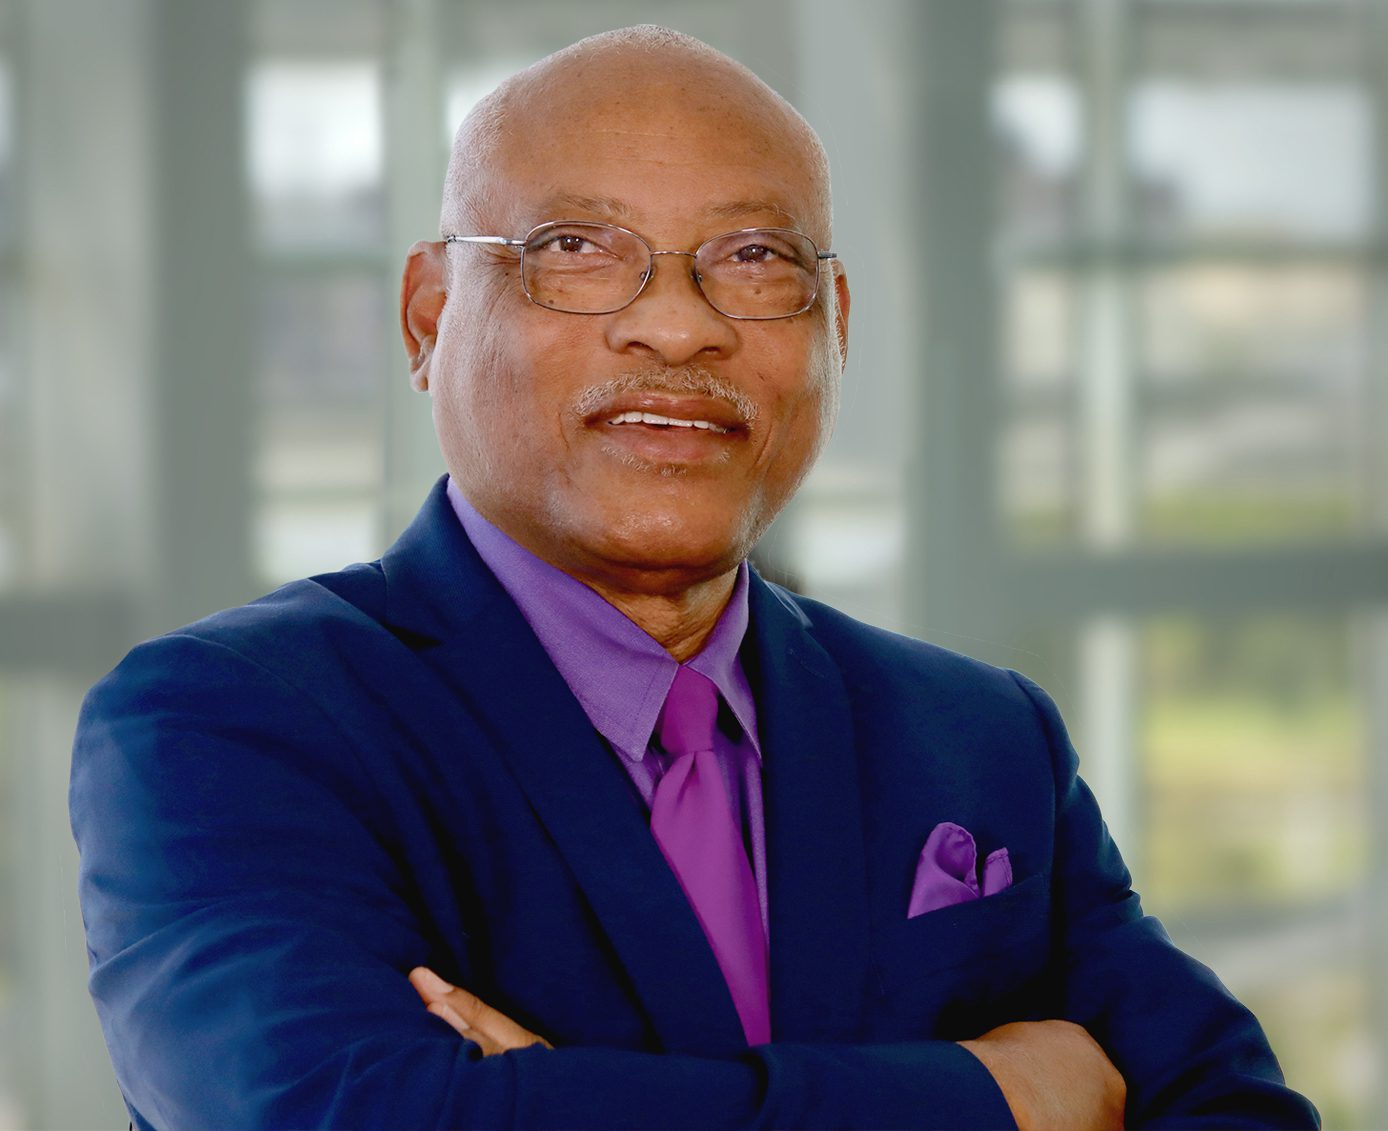 Tampa Bay History Center - Fred Hearns - Curator of Black History